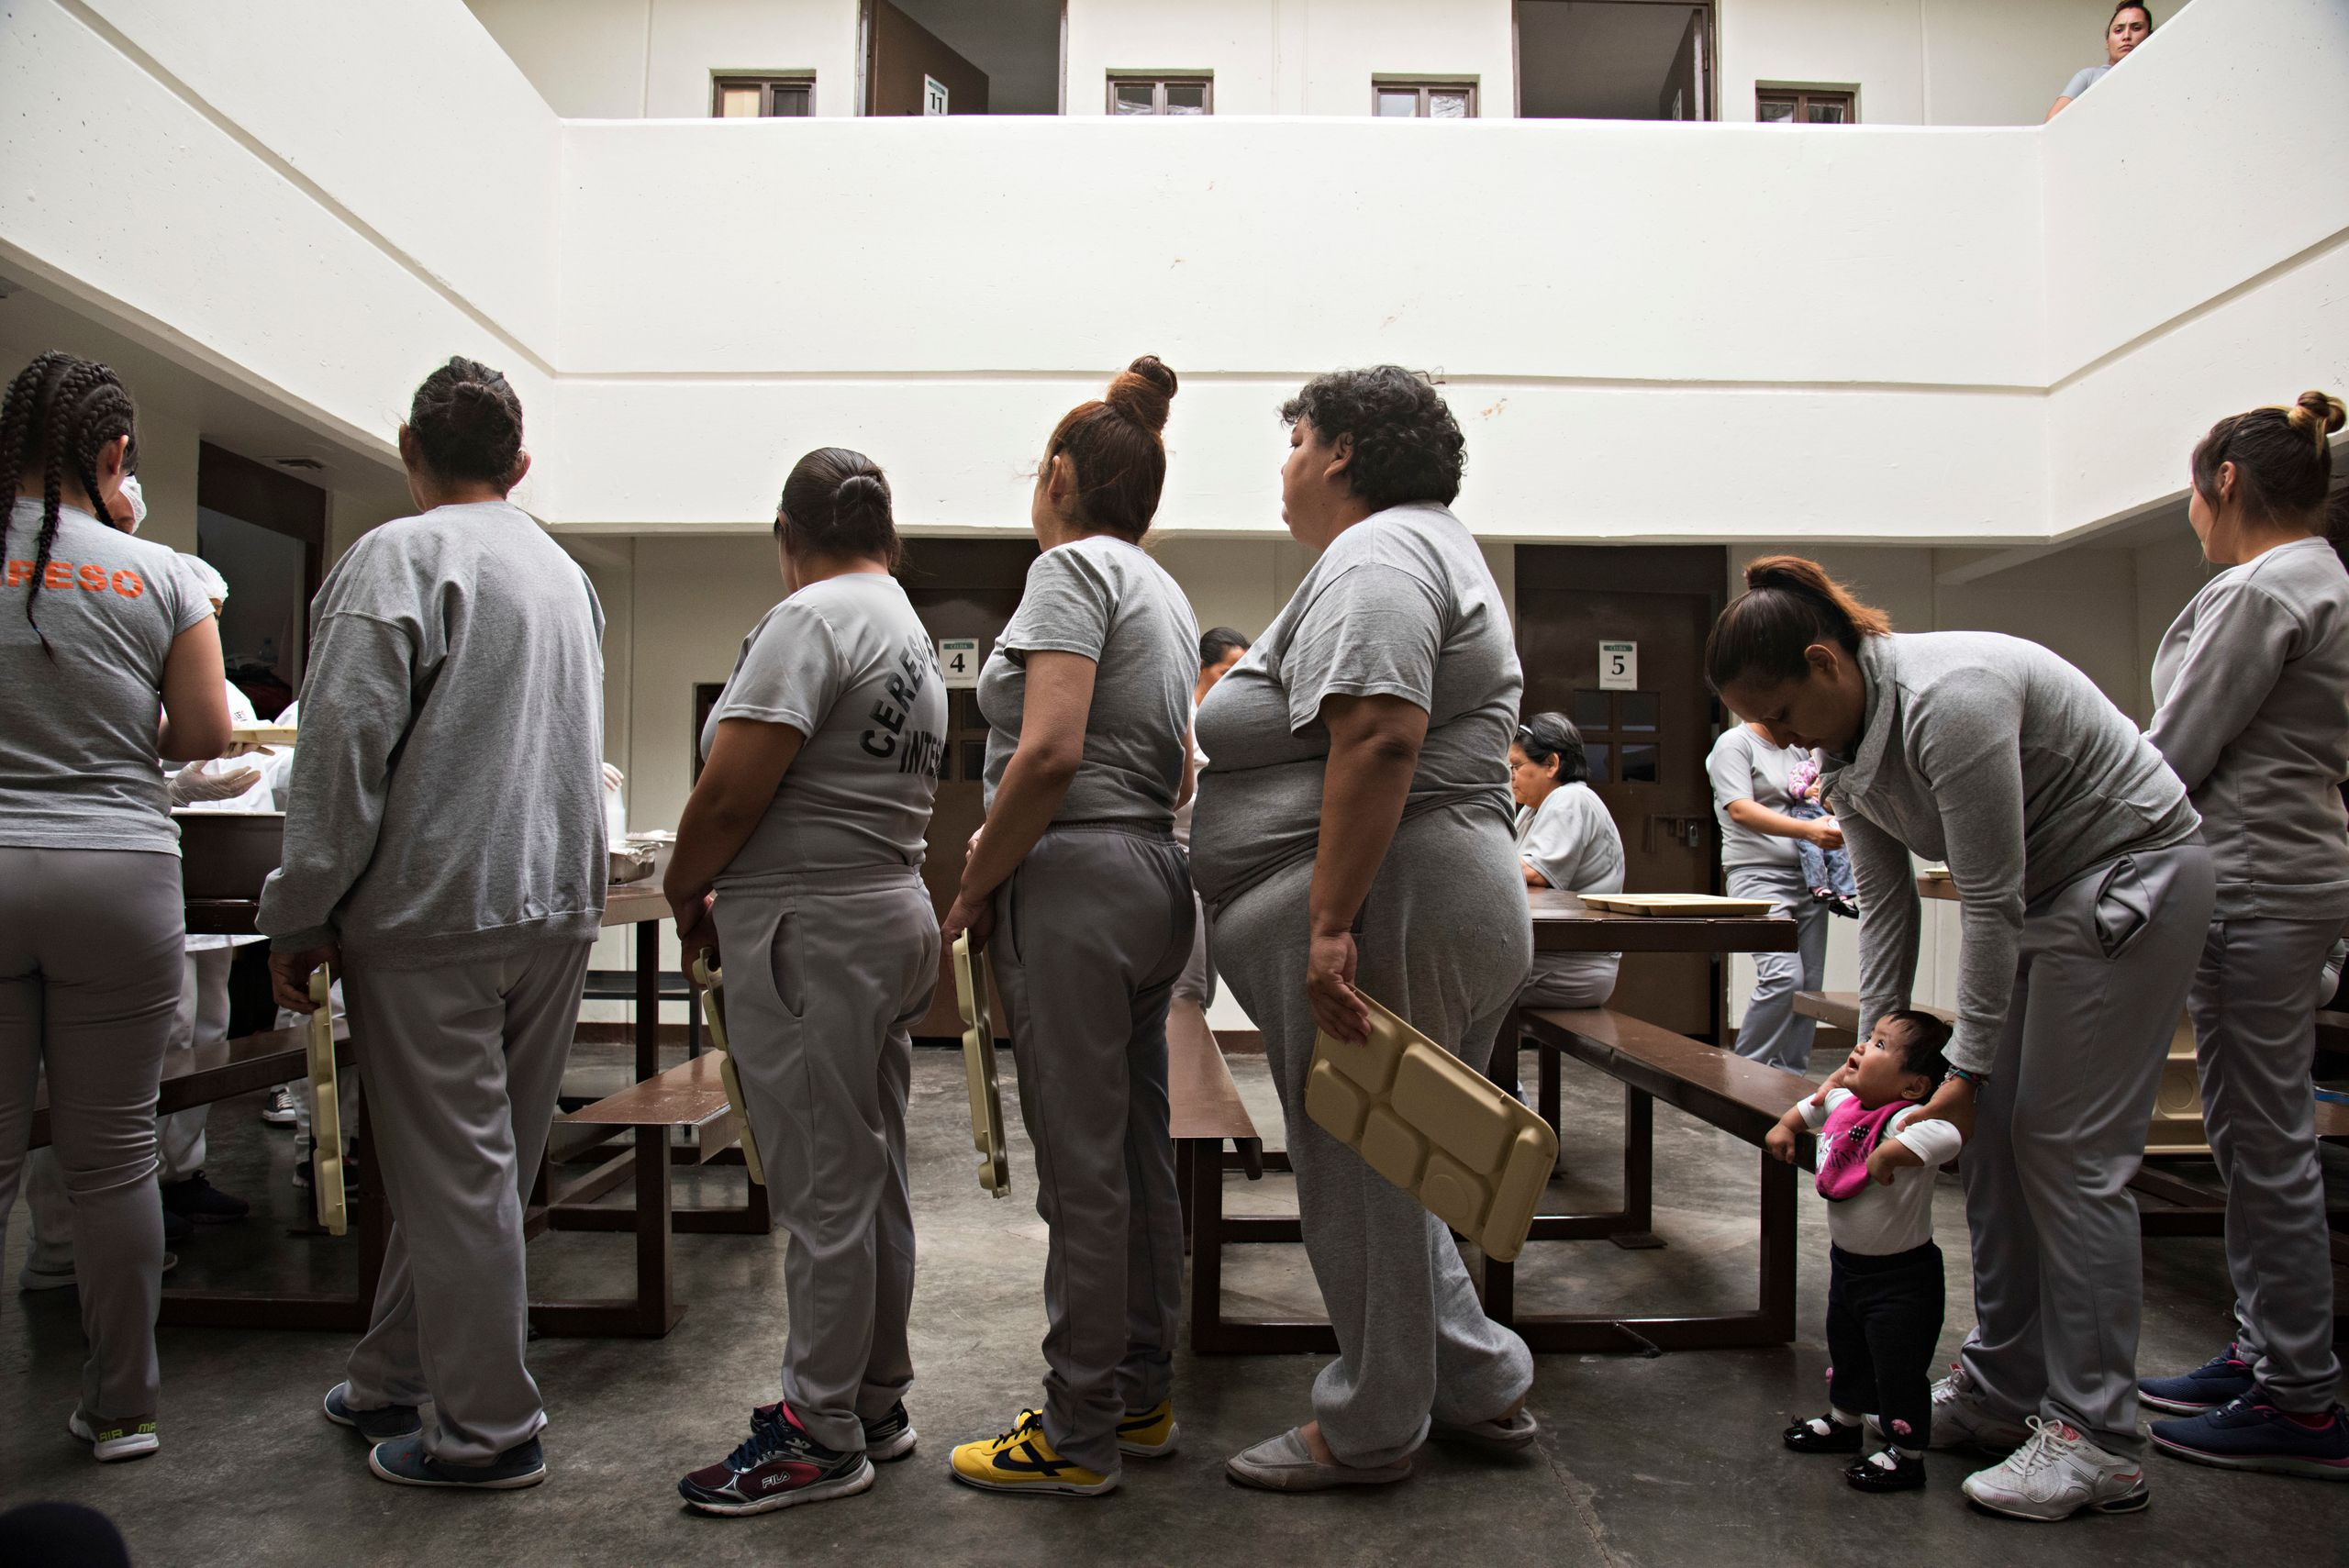 Women line up for lunch in the common area of the living quarters in the women's state prison in Chihuahua City, Mexico.&nbsp